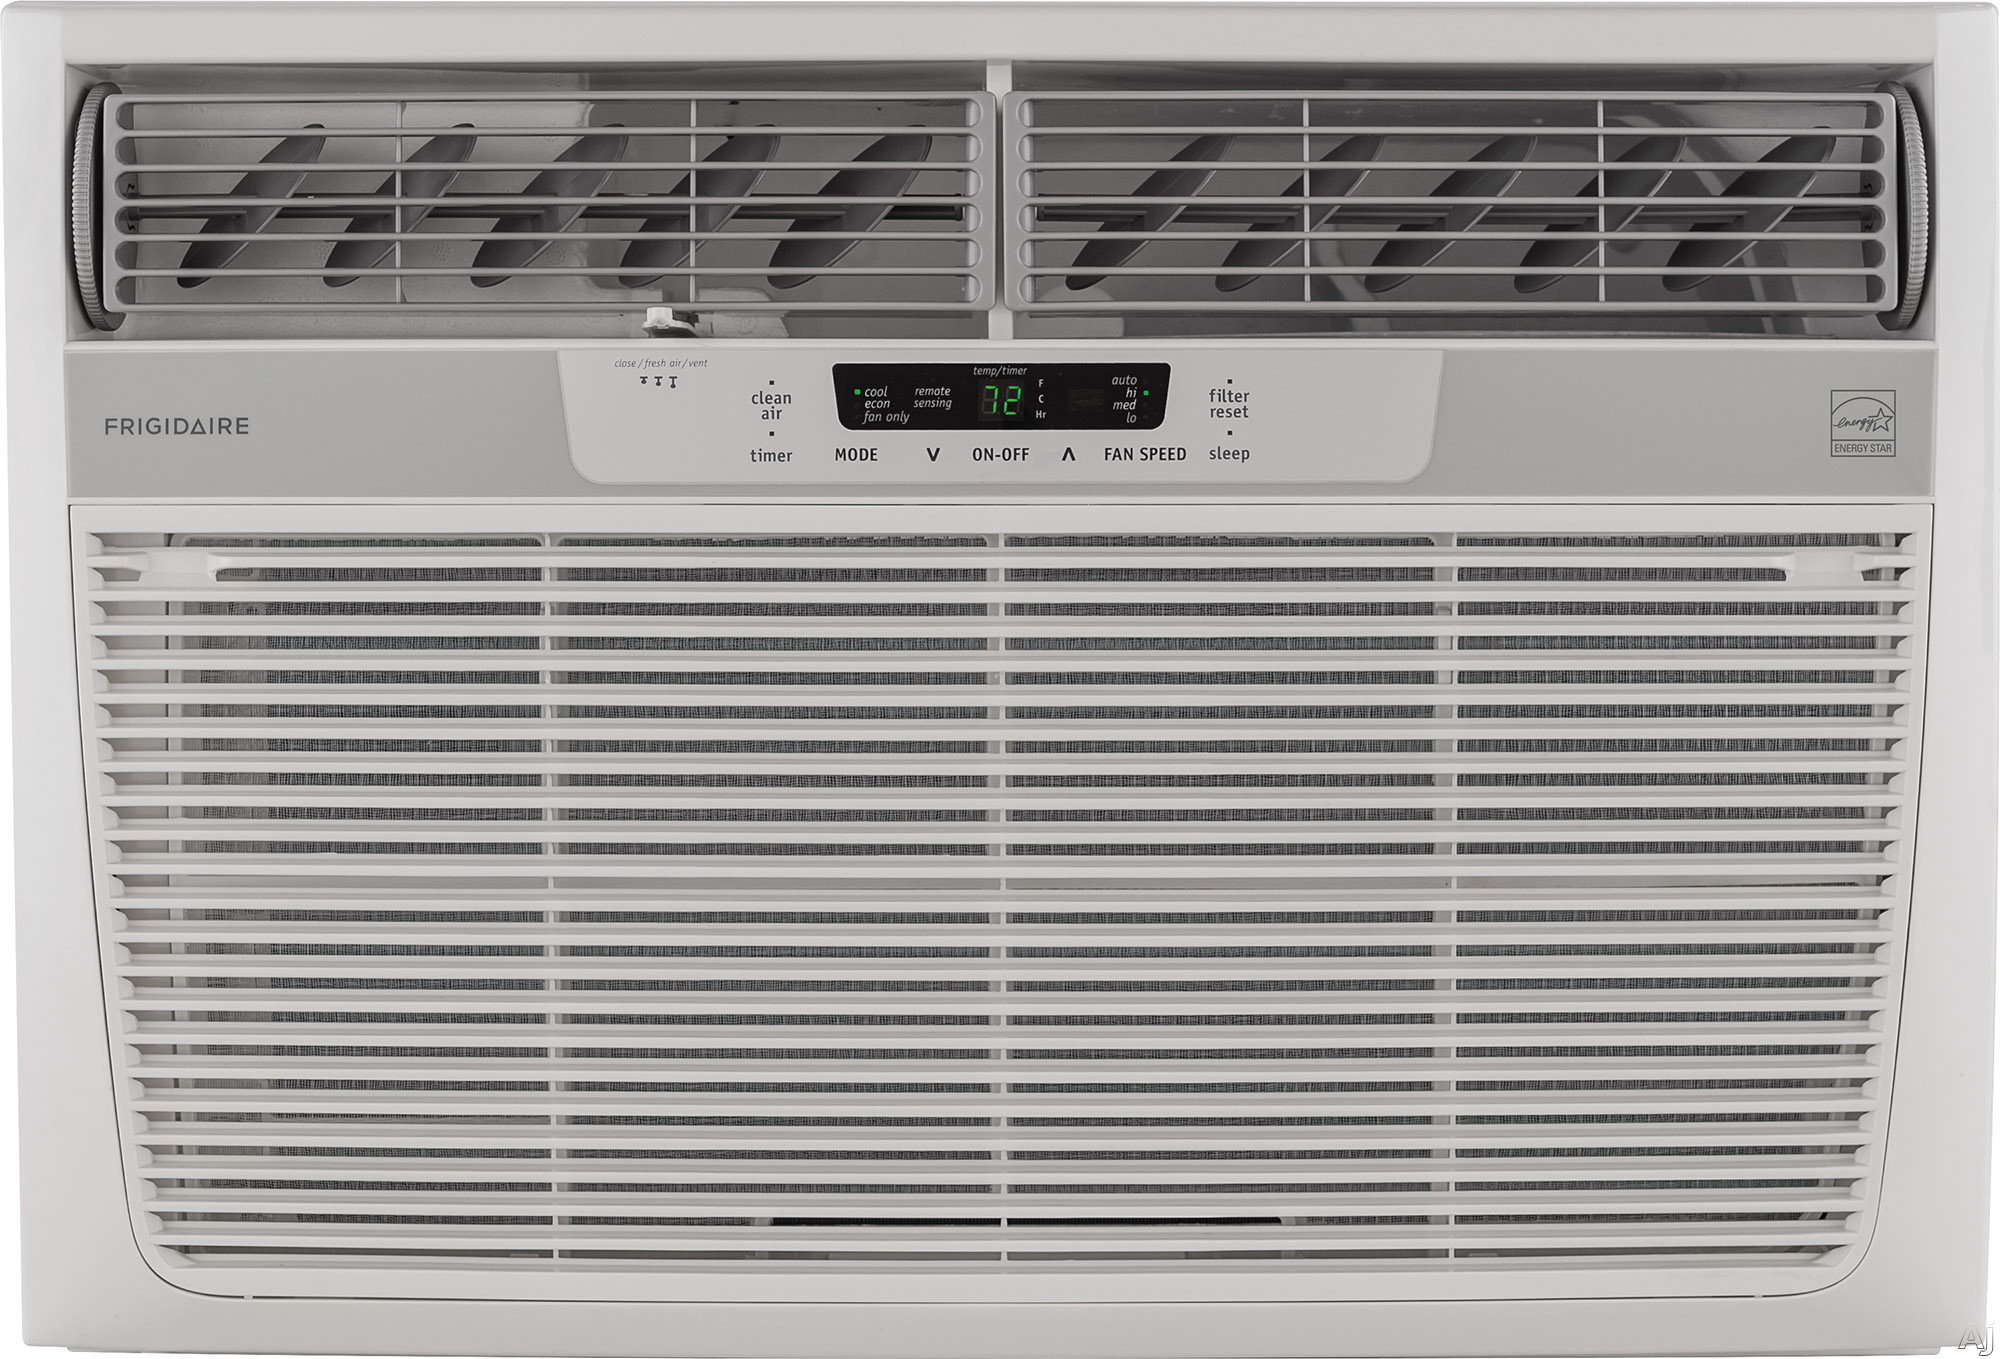 Frigidaire FFRE2233S2 22 000 BTU ENERGY STAR Window Wall Air Conditioner with Digital Controls Remote Control 1 300 sq. ft. Cooling Area Ready Select Controls 24 Hour On Off Timer Energy Mode and Clea